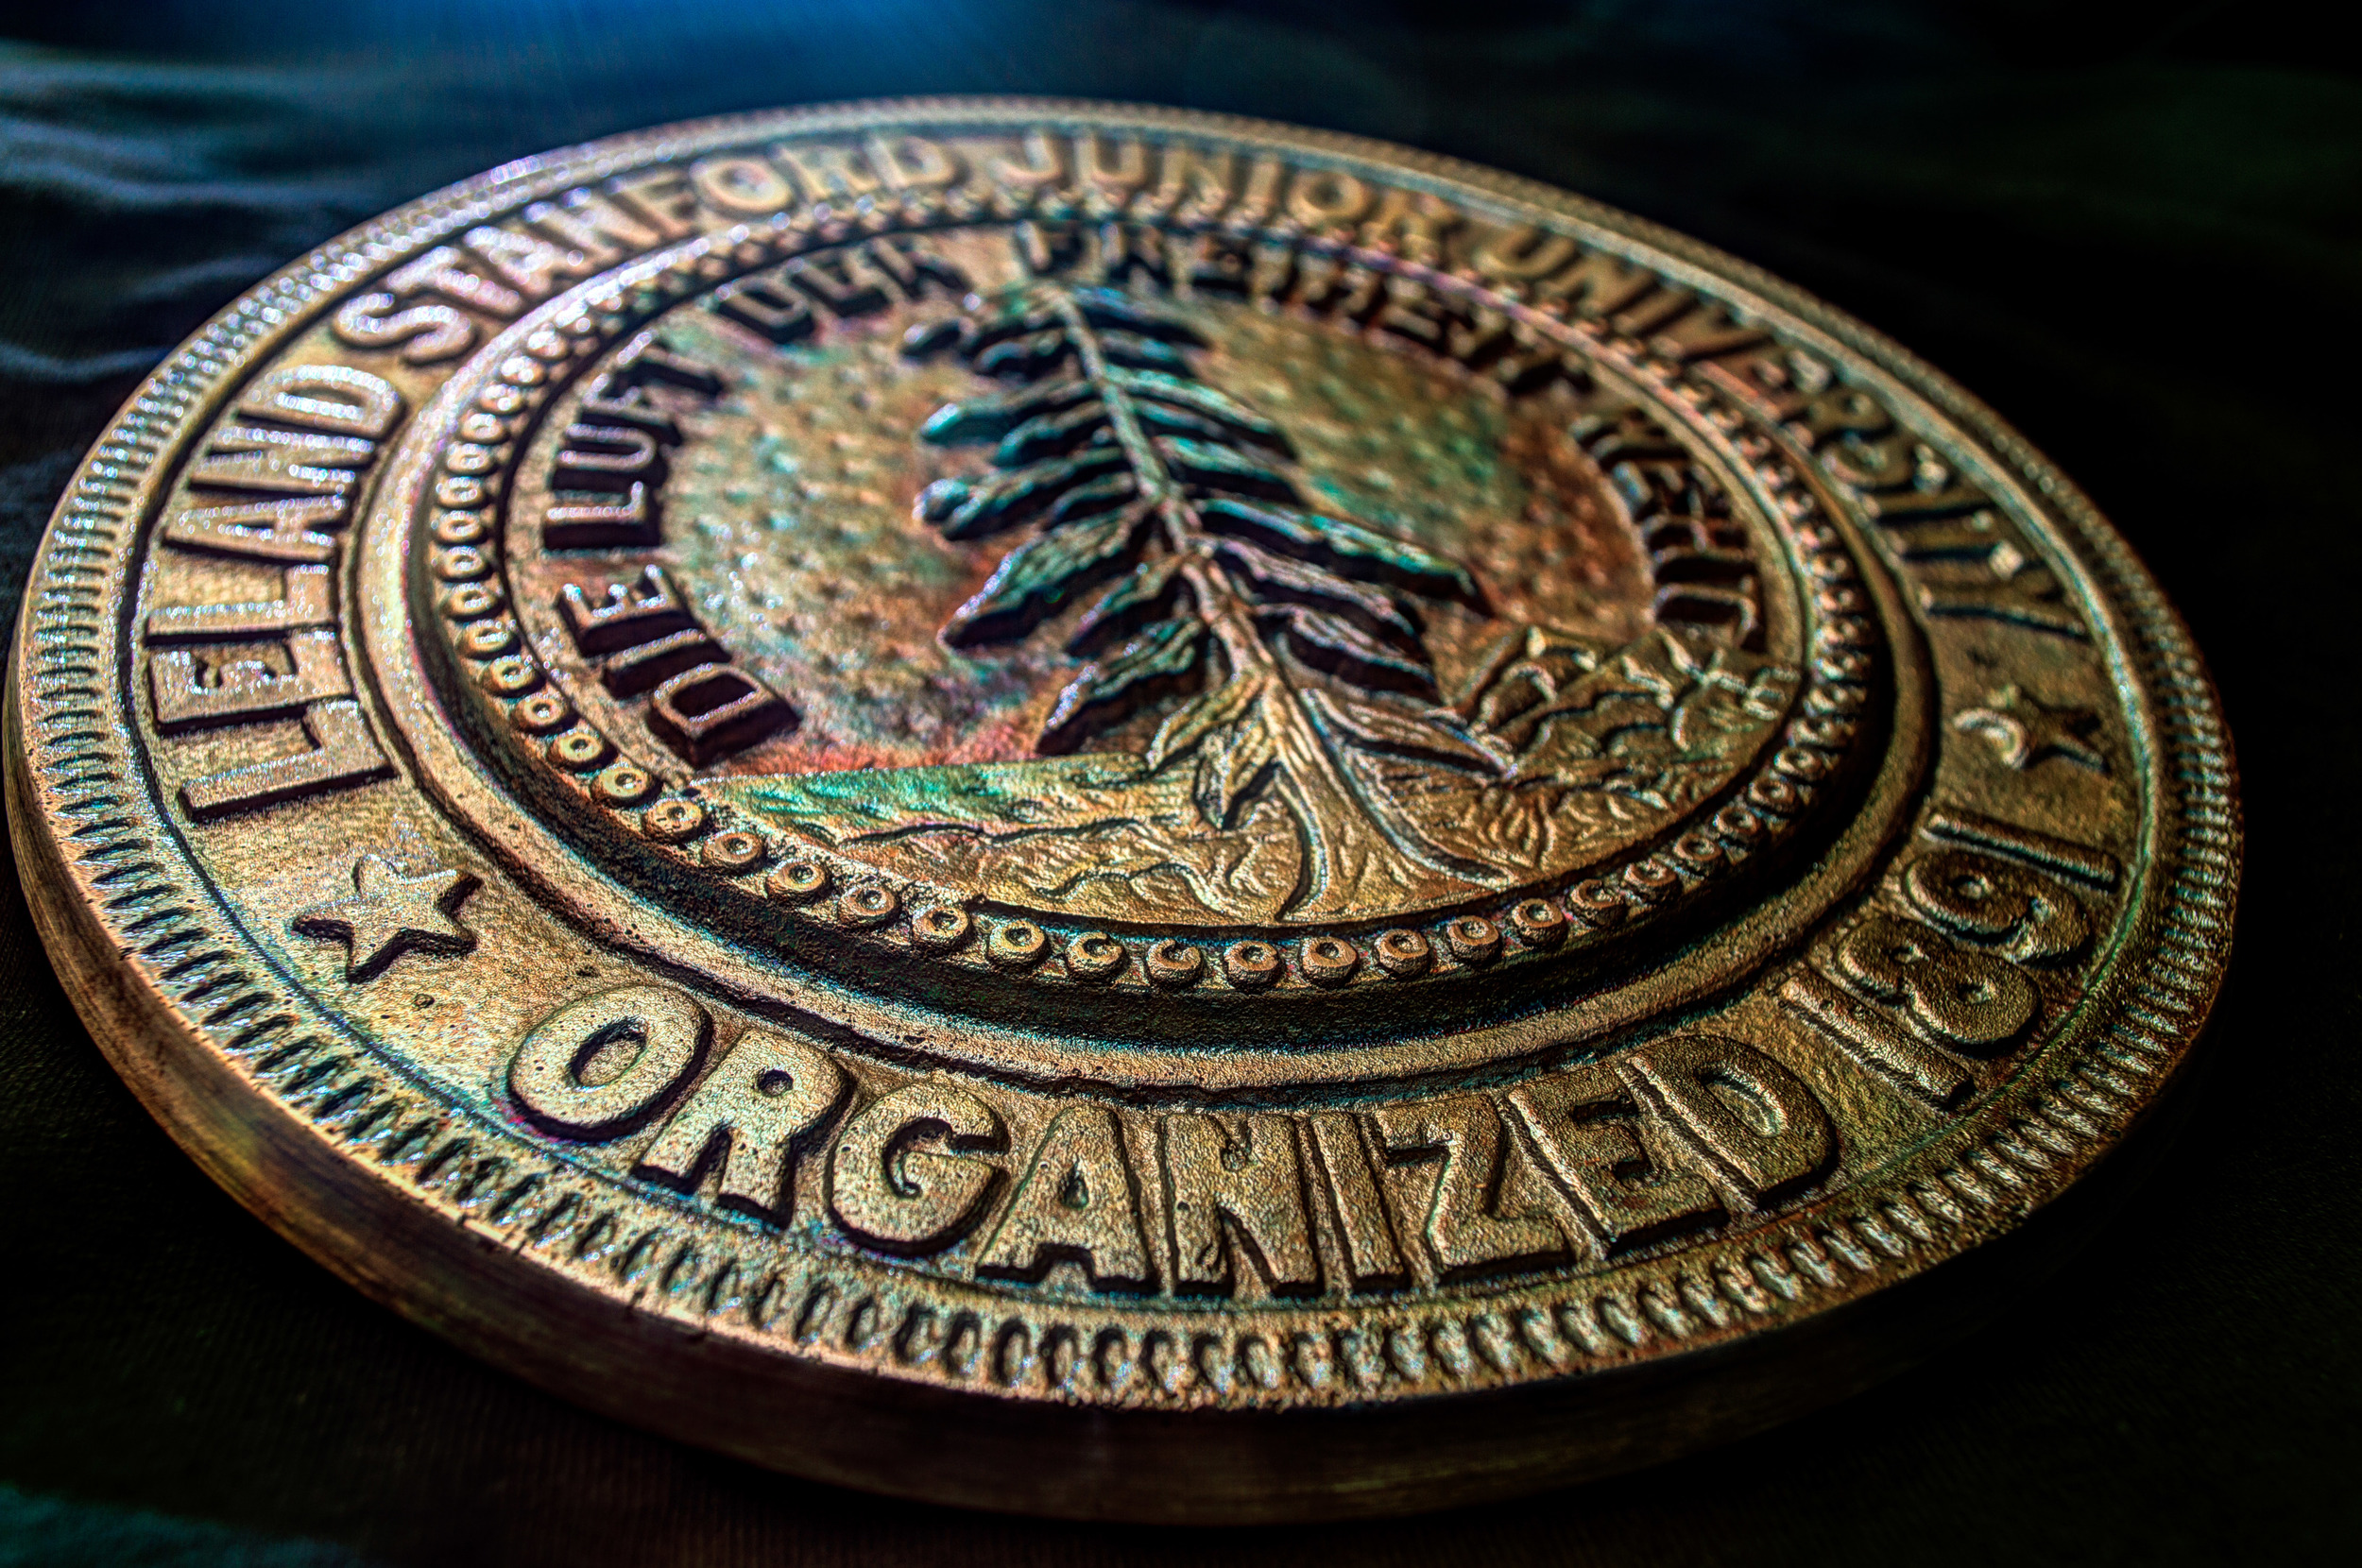 In ME203: Design and Manufacturing, every student makes a plaque of the Stanford Seal by sand casting it in bronze  Nikon D3200 | 30mm | f/7.1 | 15s | ISO-100